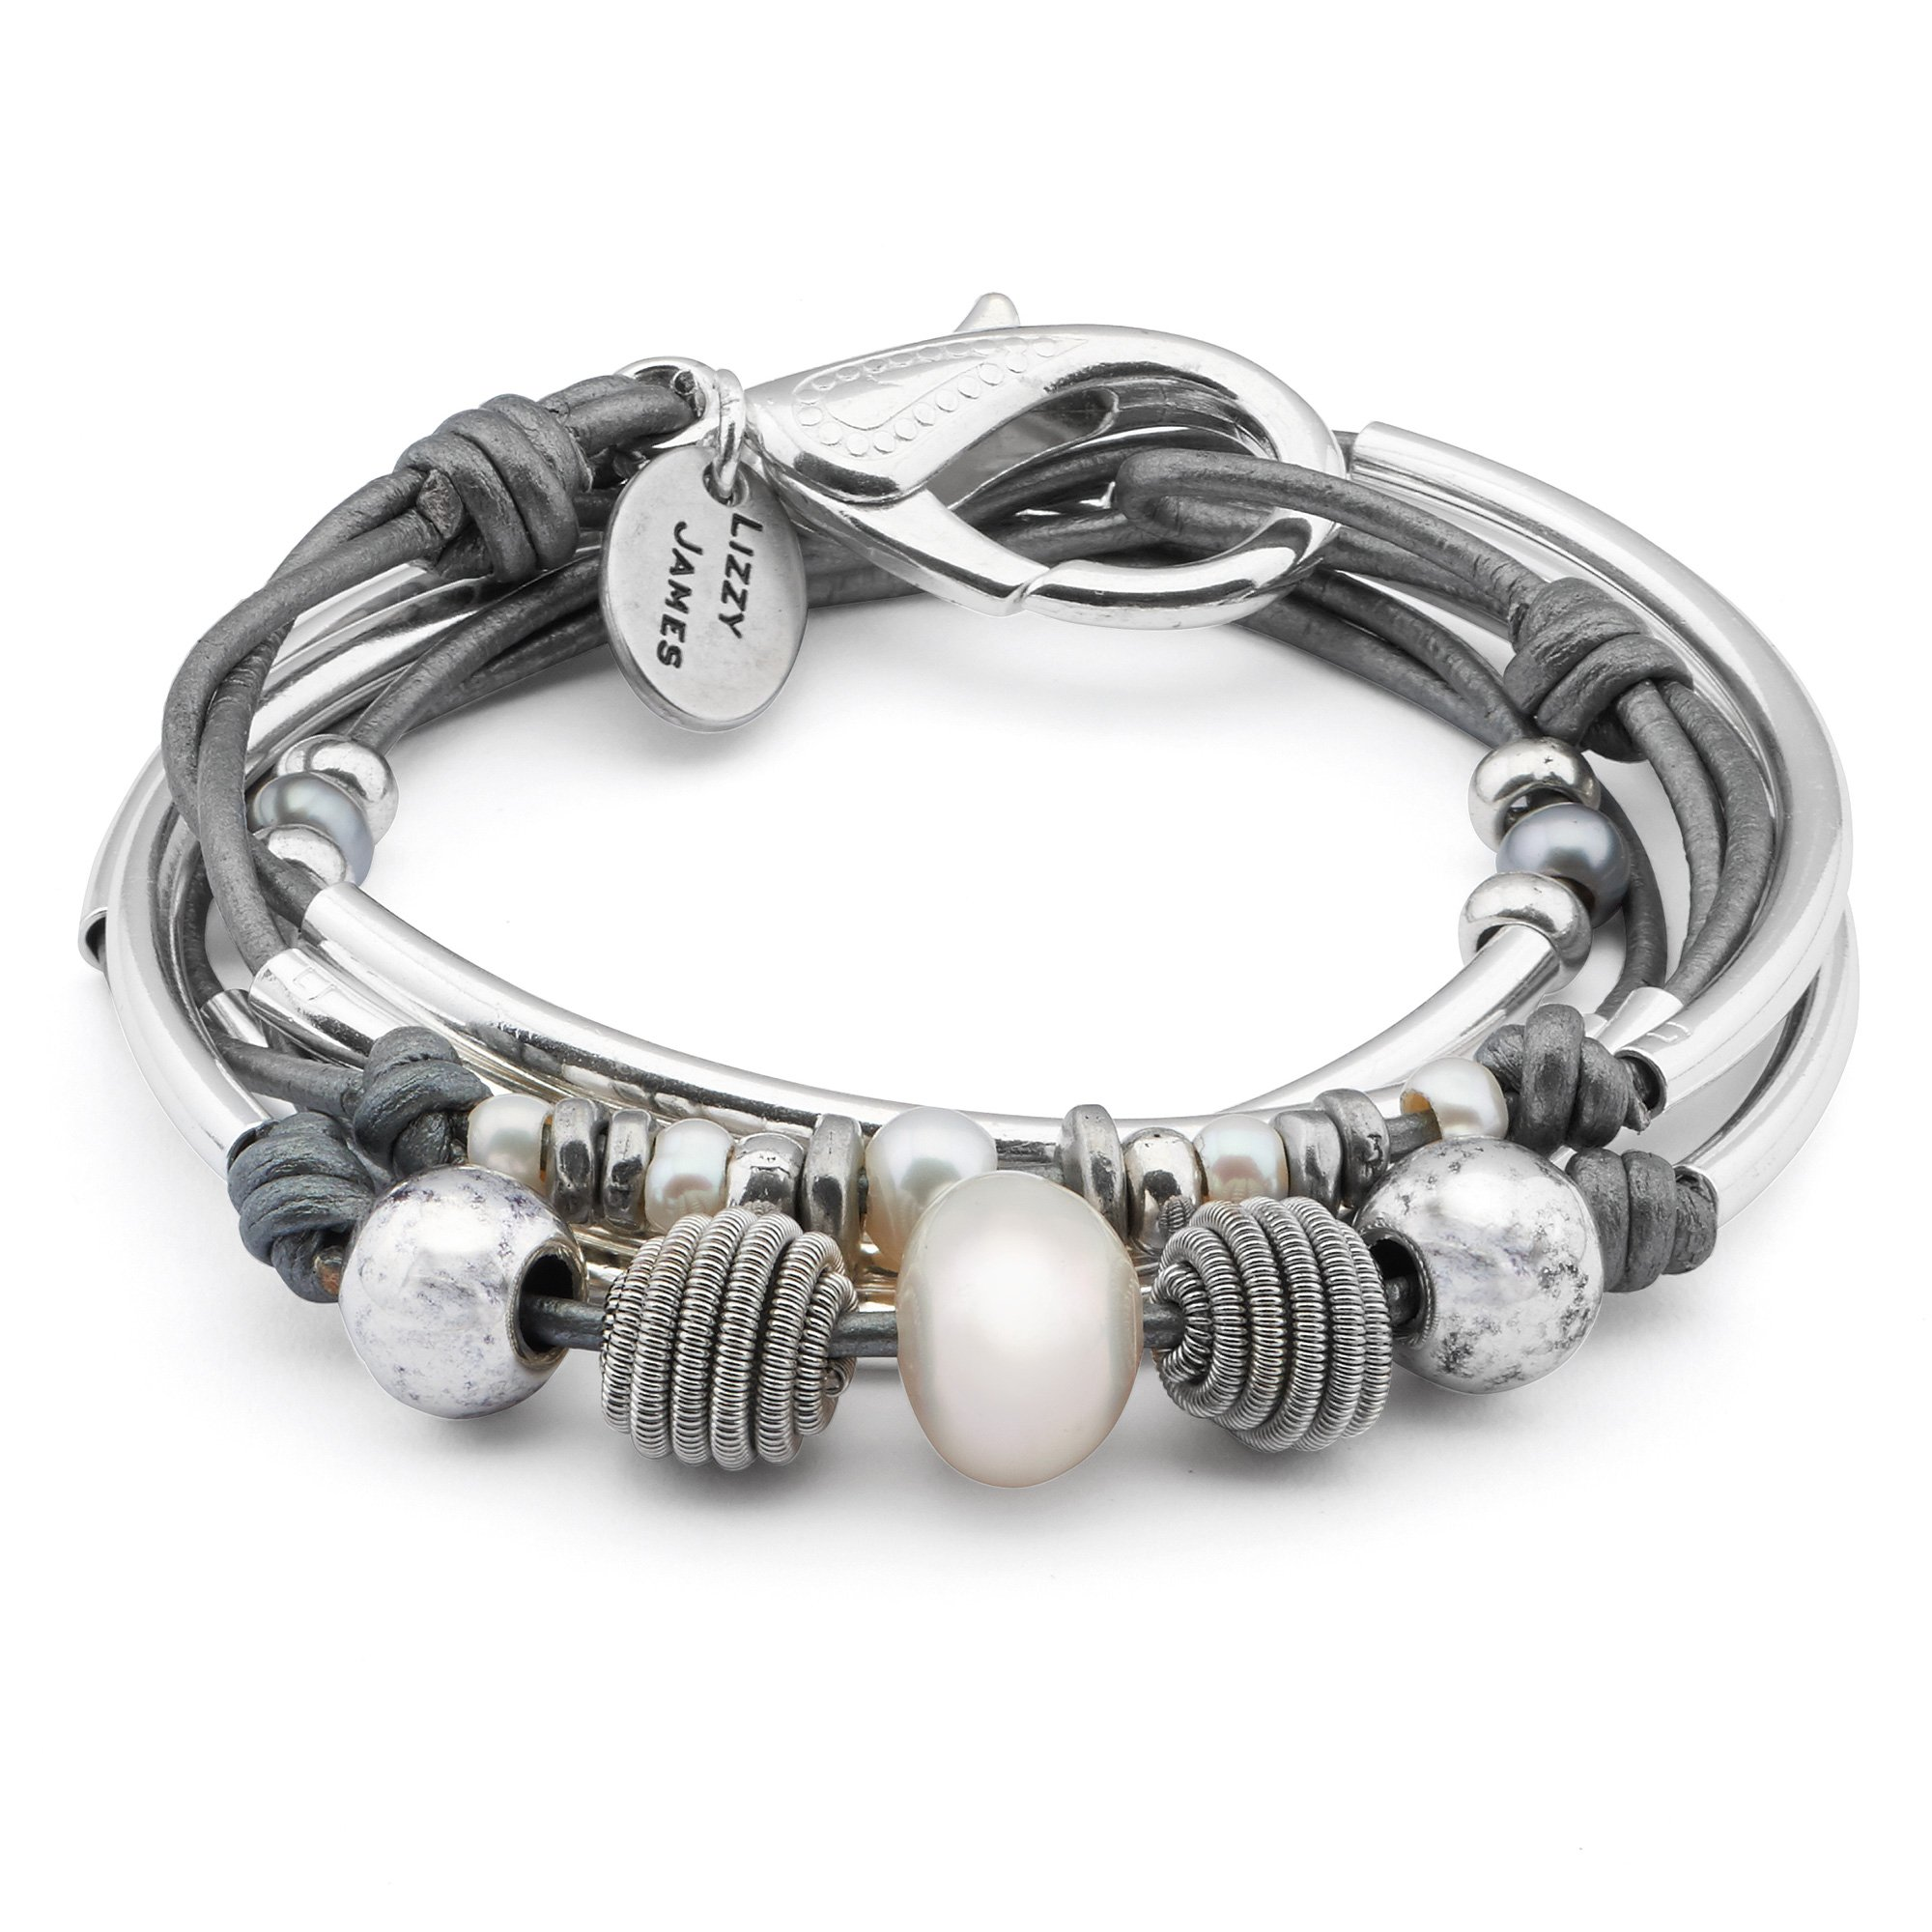 Lizzy James Maribel 2 Strand Wrap Bracelet Necklace in Silver Plate and Metallic Silver Leather with Freshwater Pearl (Small)